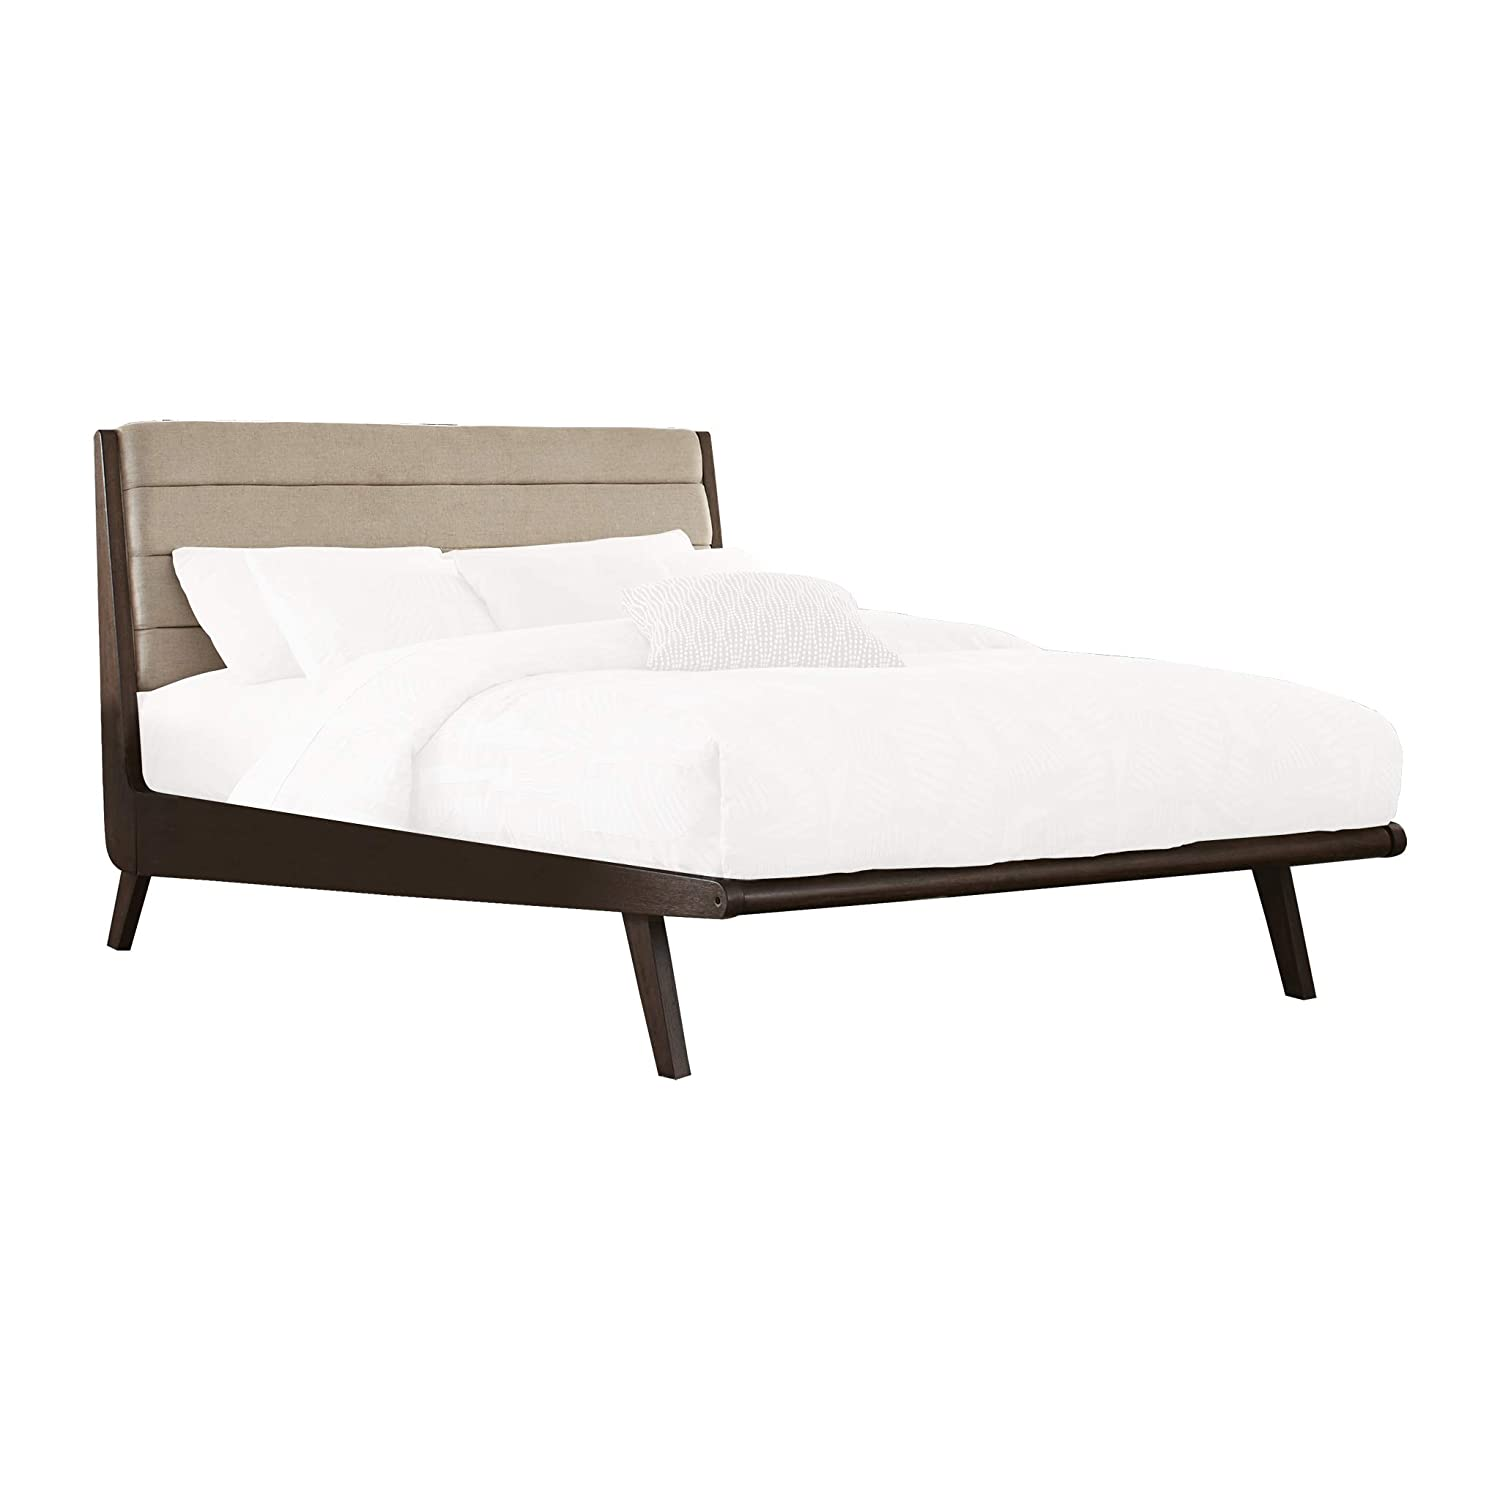 Lexicon Ruote Low-Profile Platform Bed Queen Brown